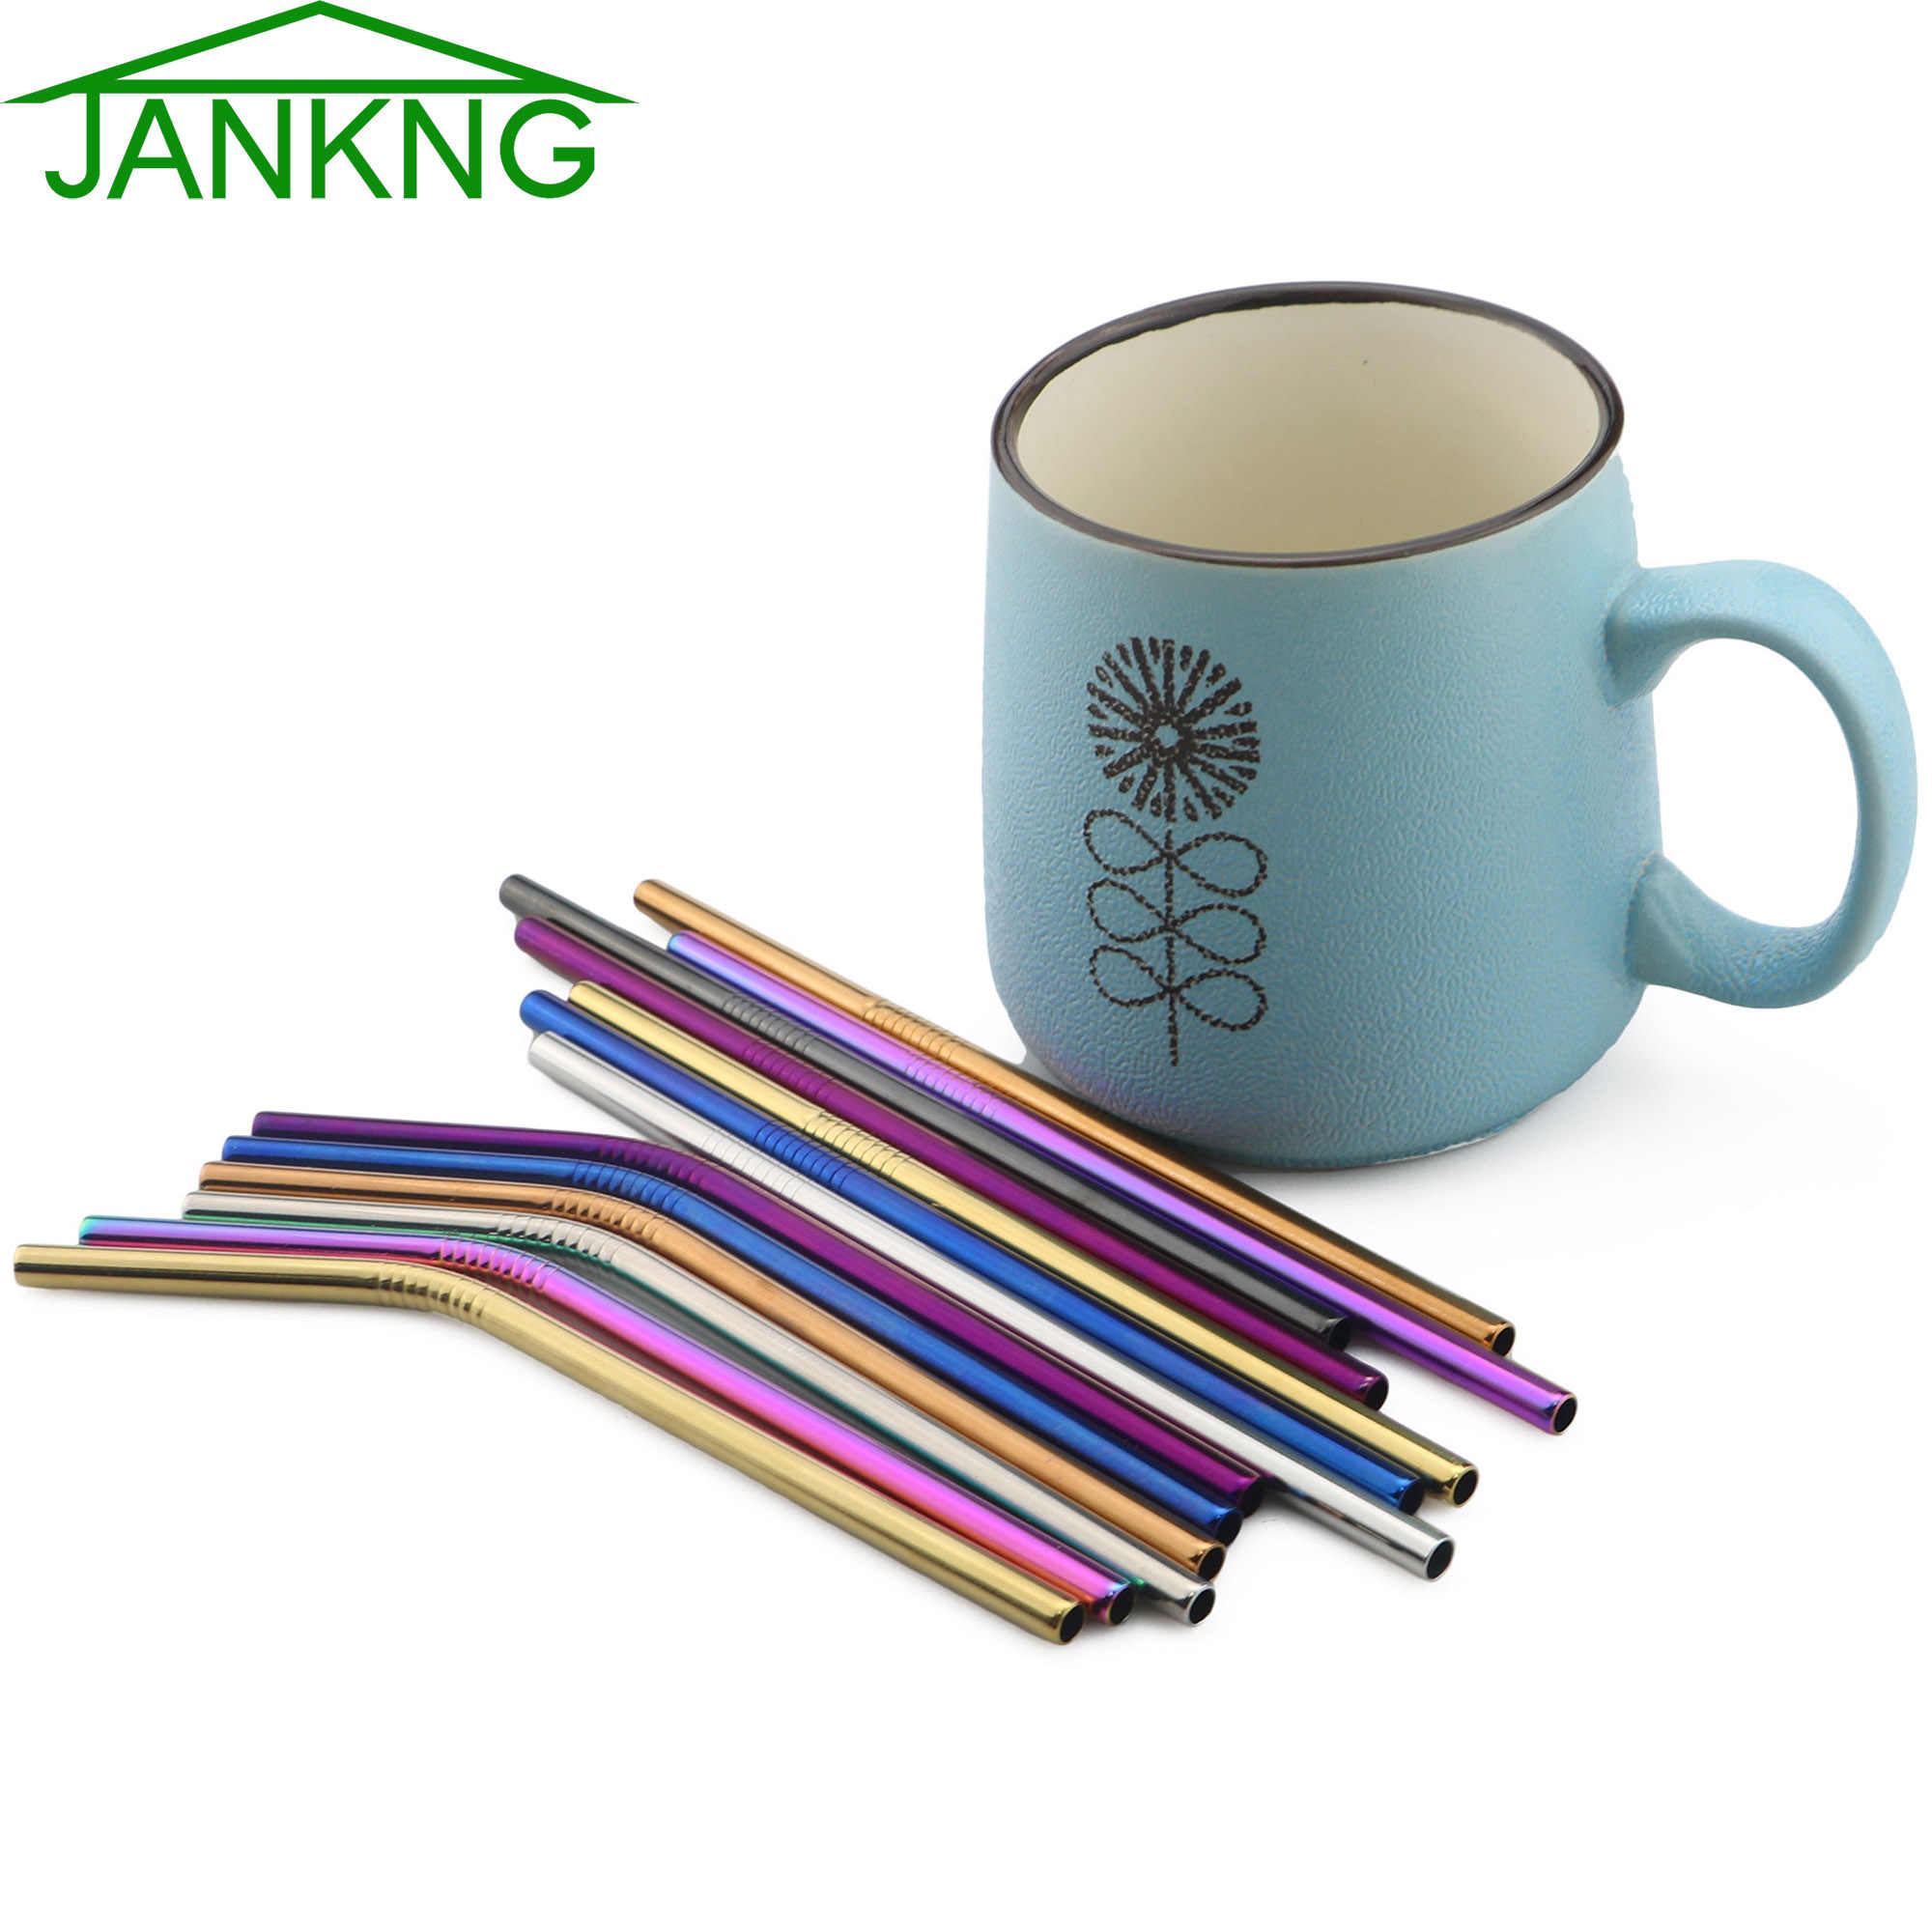 JANKNG Short 16cm Colorful Metal Straw 3-Pcs Stainless Steel Straws Reusable Bent Straw Mug Coffee Drinking Straw Cleaner Brush